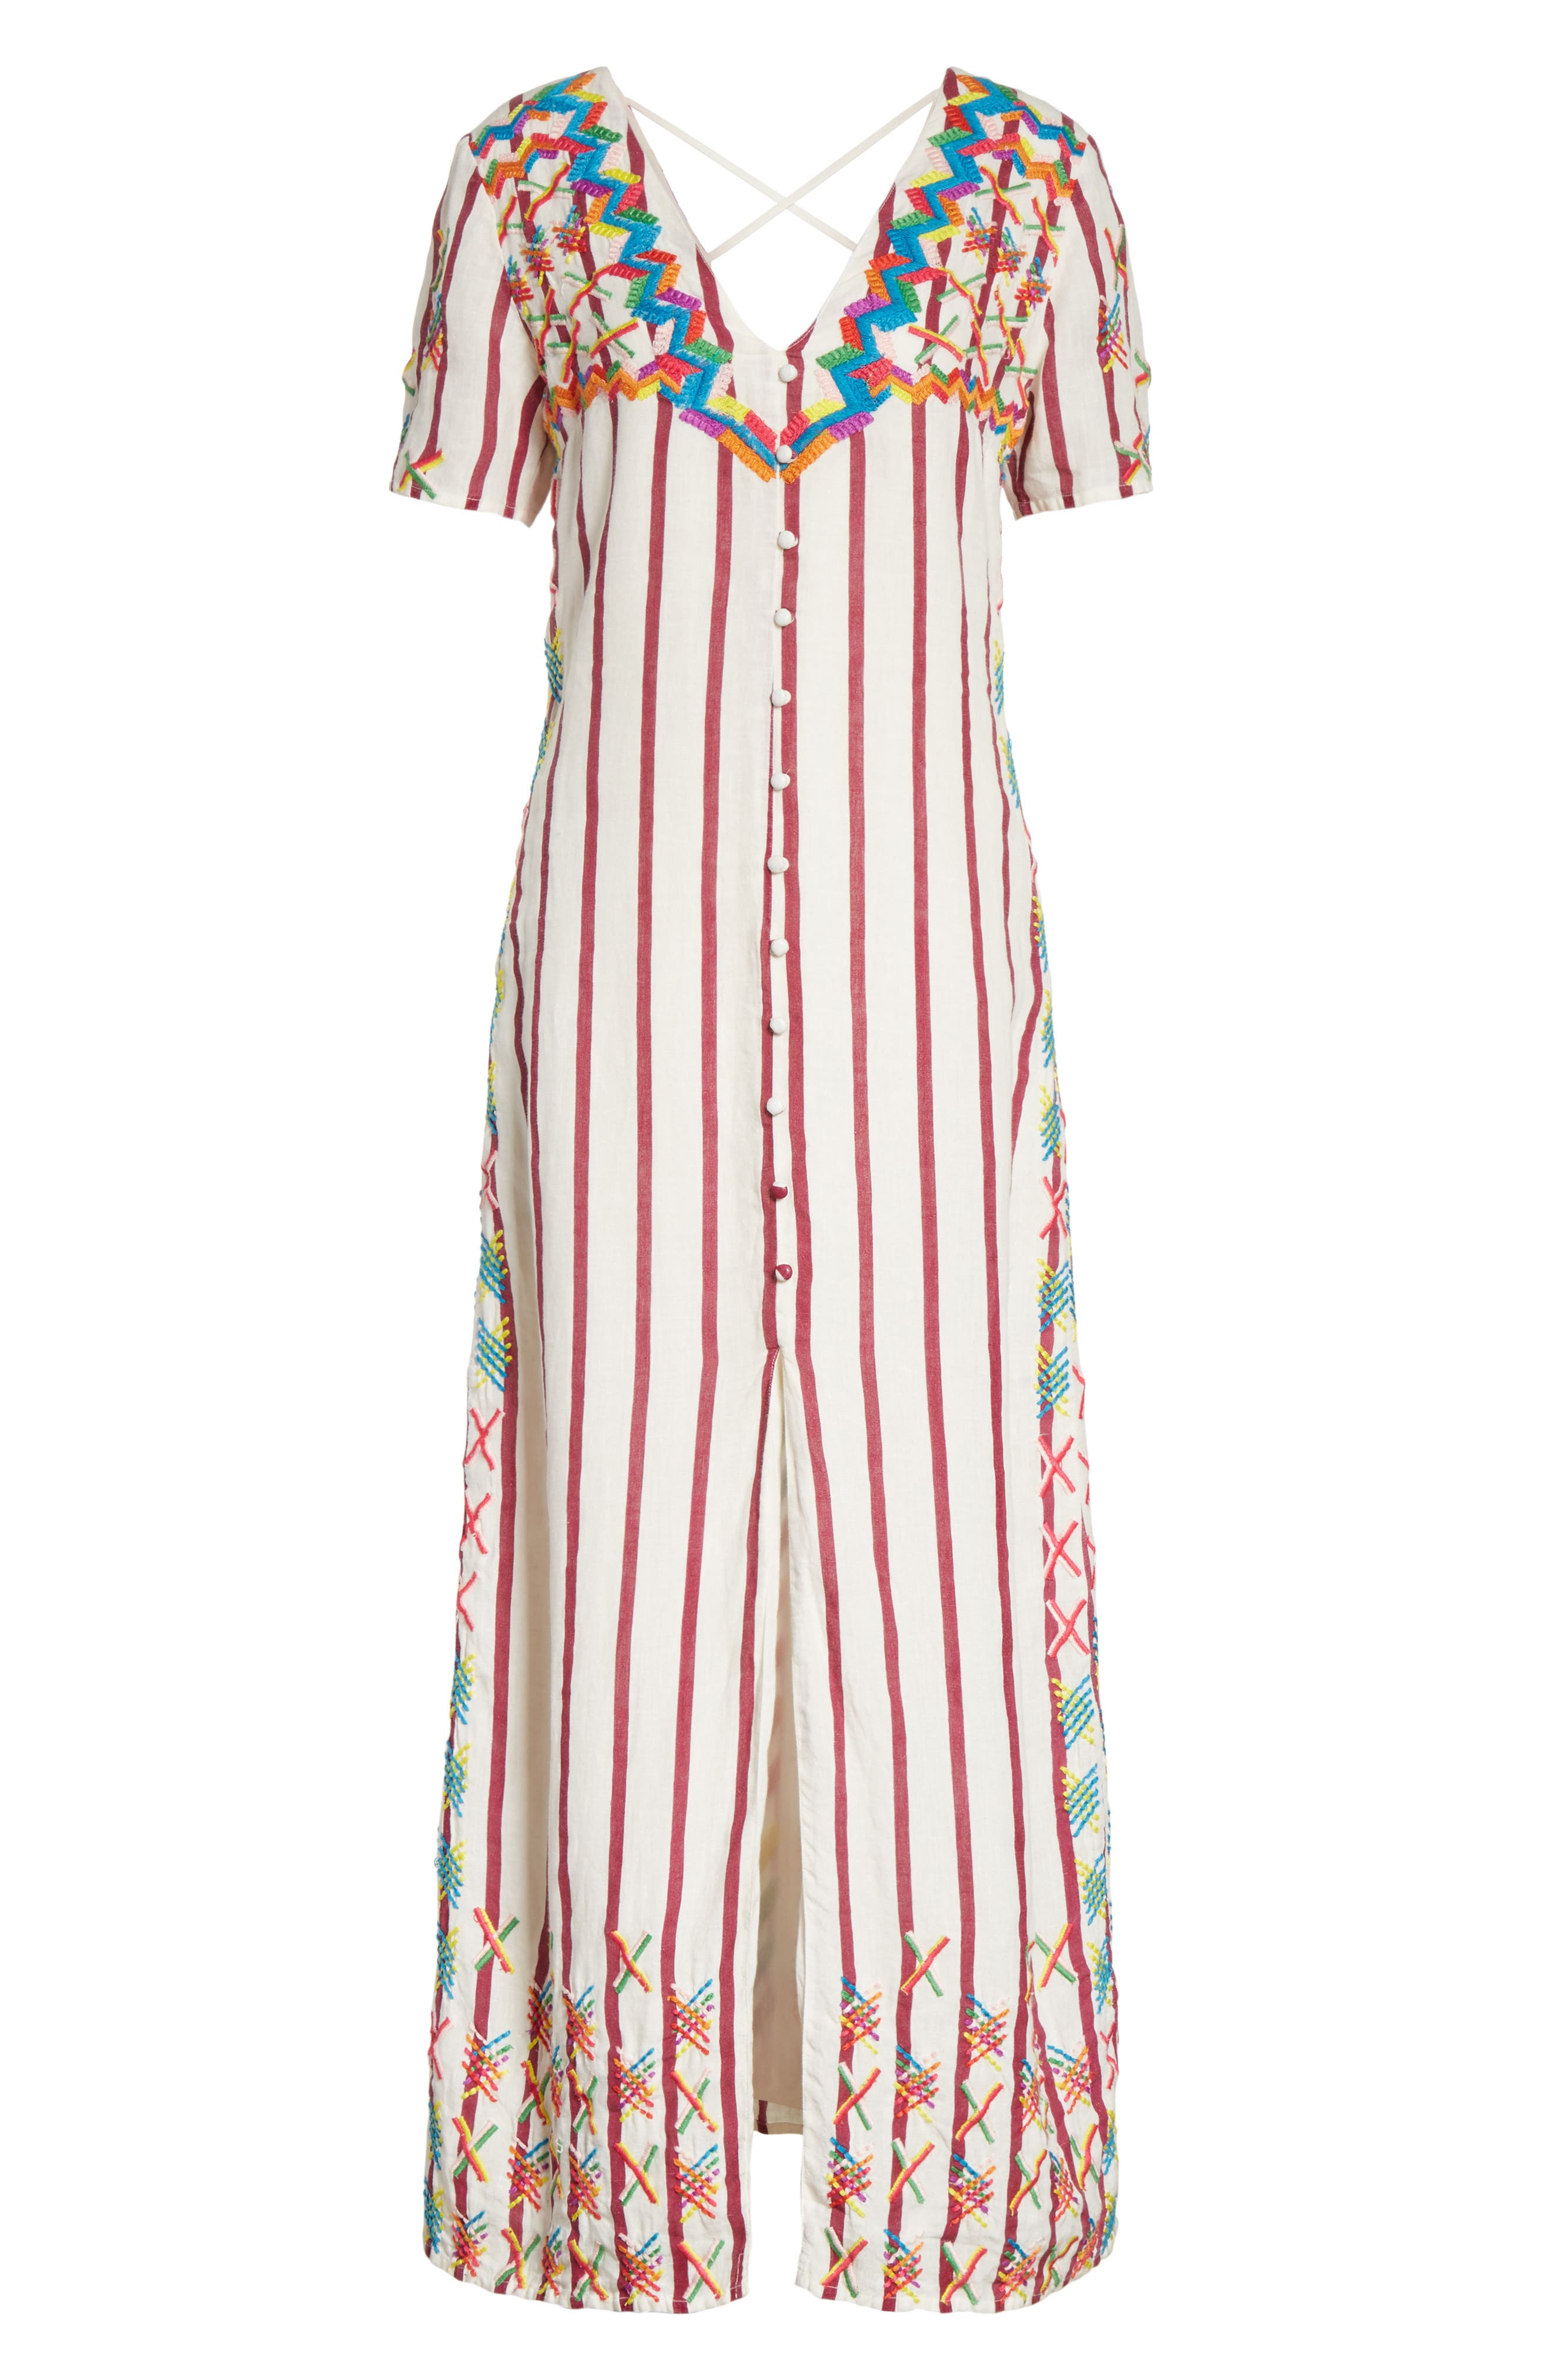 Maria Embroidered Maxi Dress,                             Alternate thumbnail 6, color,                             Off White/ Burgundy